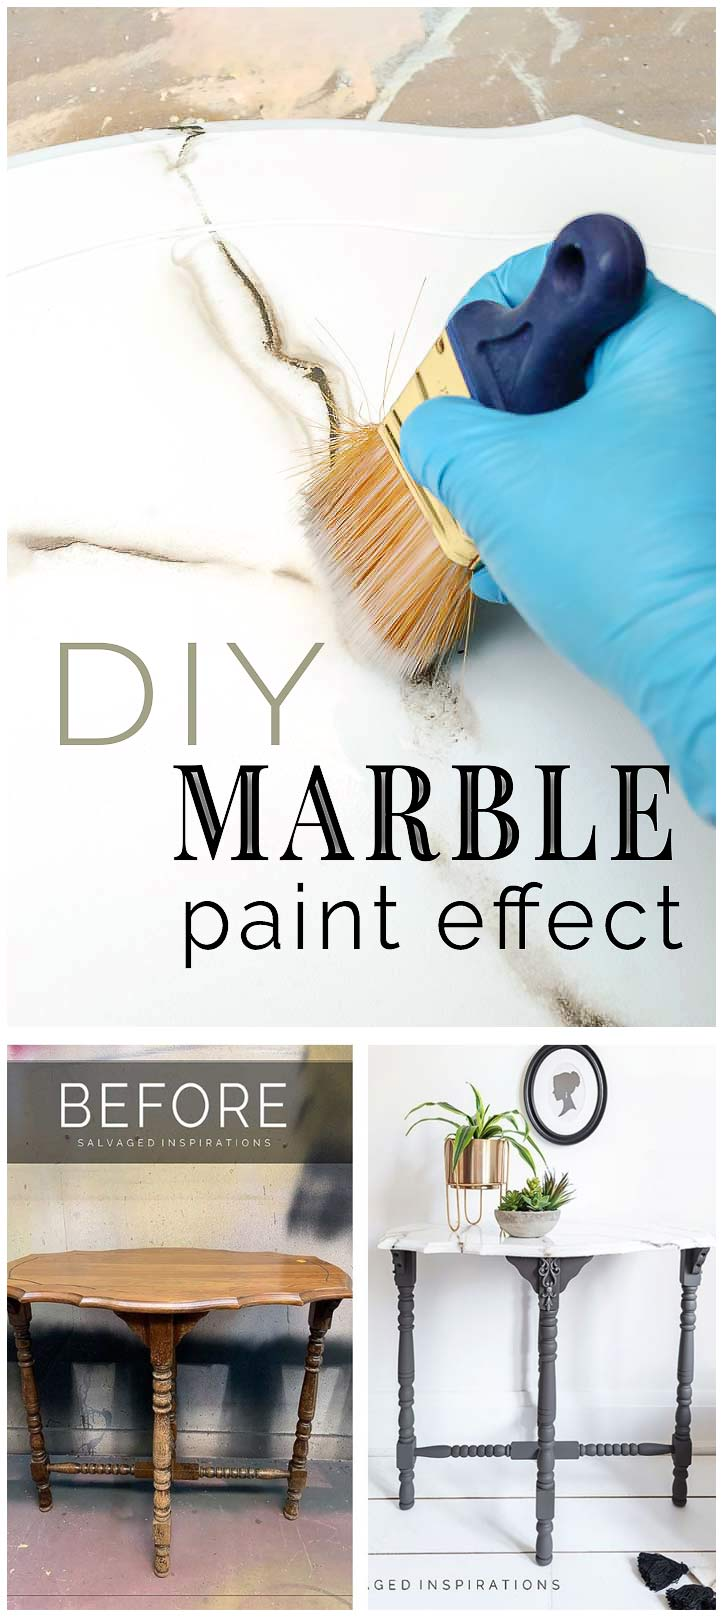 DIY Marble Paint Effects Tutorial siblog